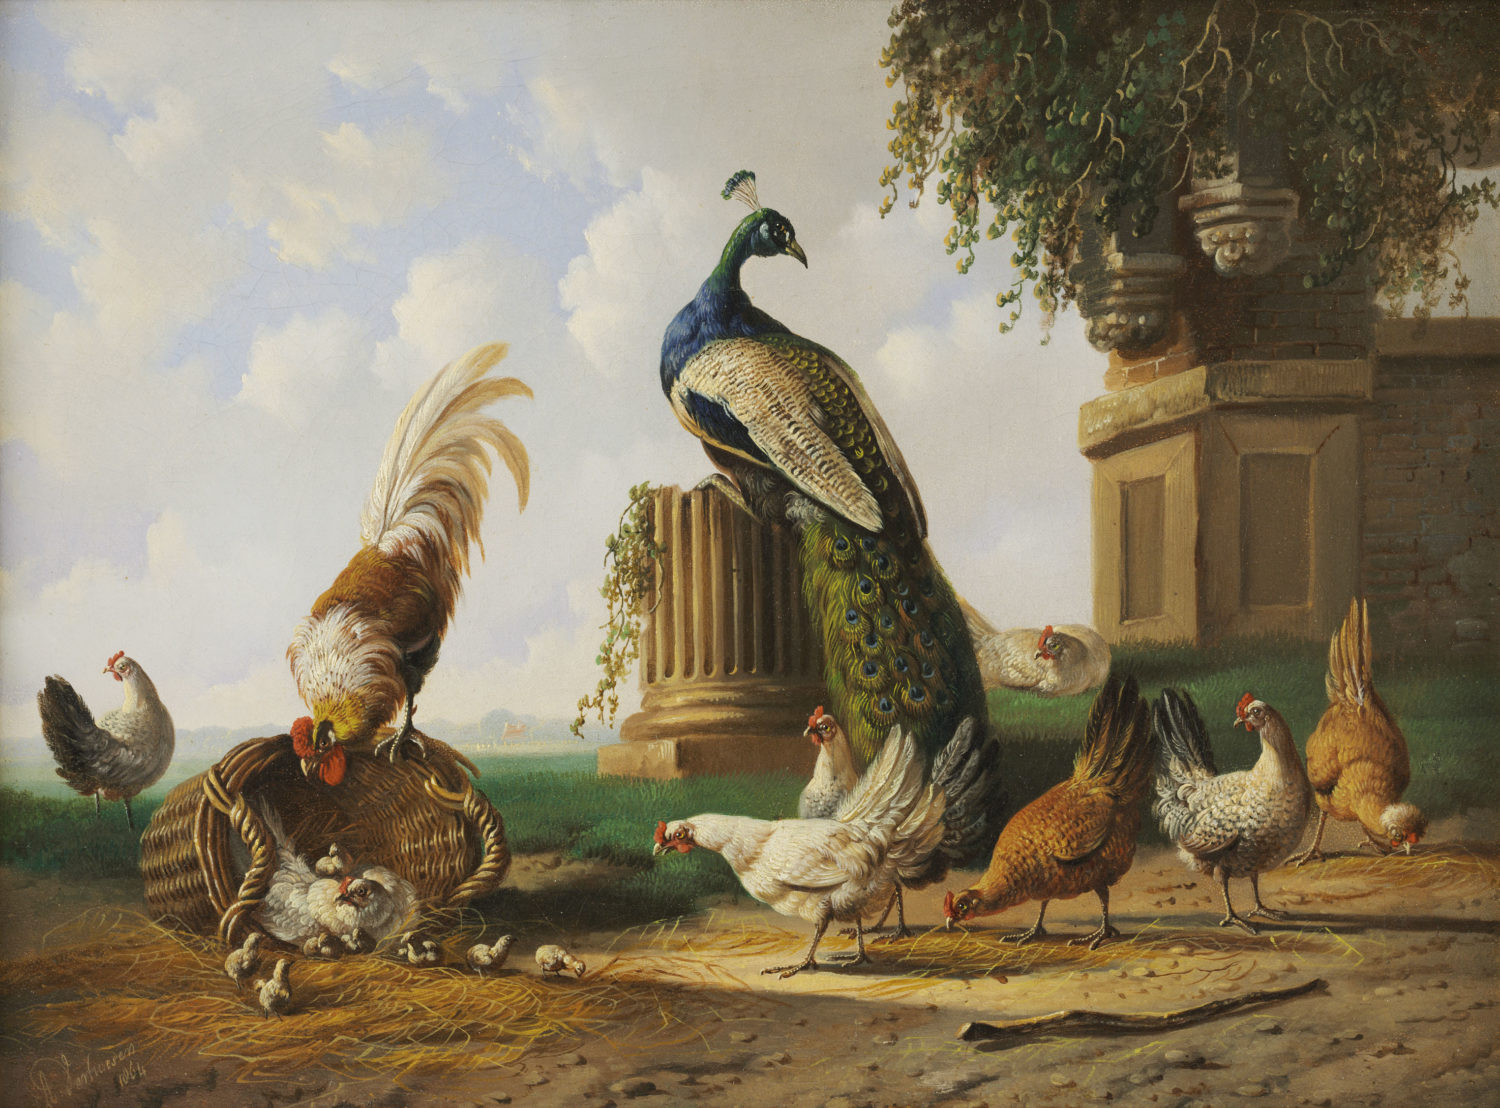 Albertus Verhoesen | A landscape with poultry (111)| Kunsthandel Bies | Bies Gallery